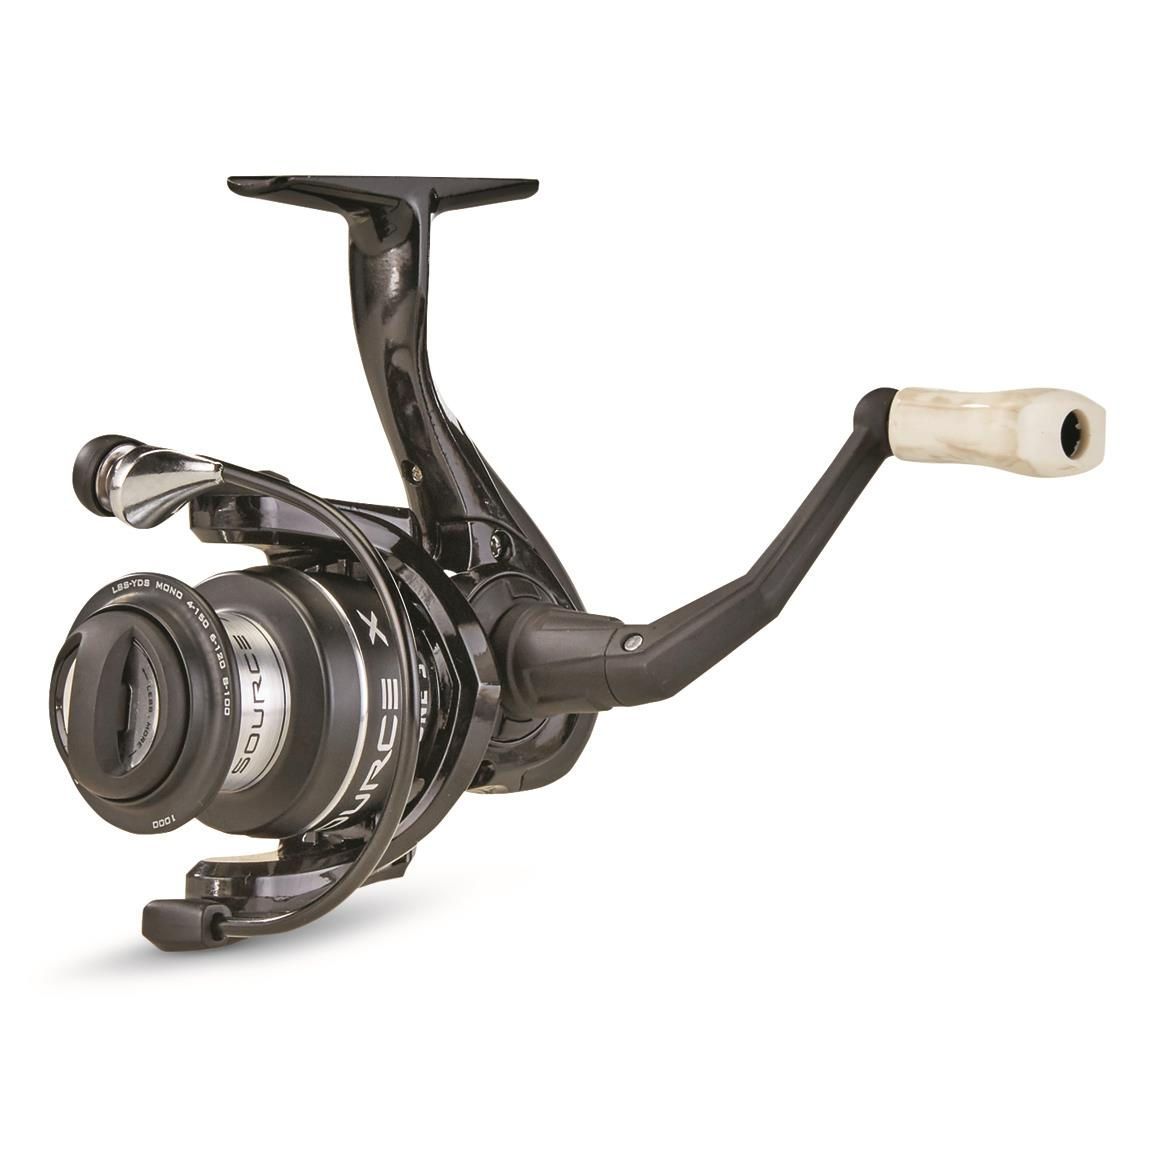 ONE3 Fishing Source X Spinning Reel